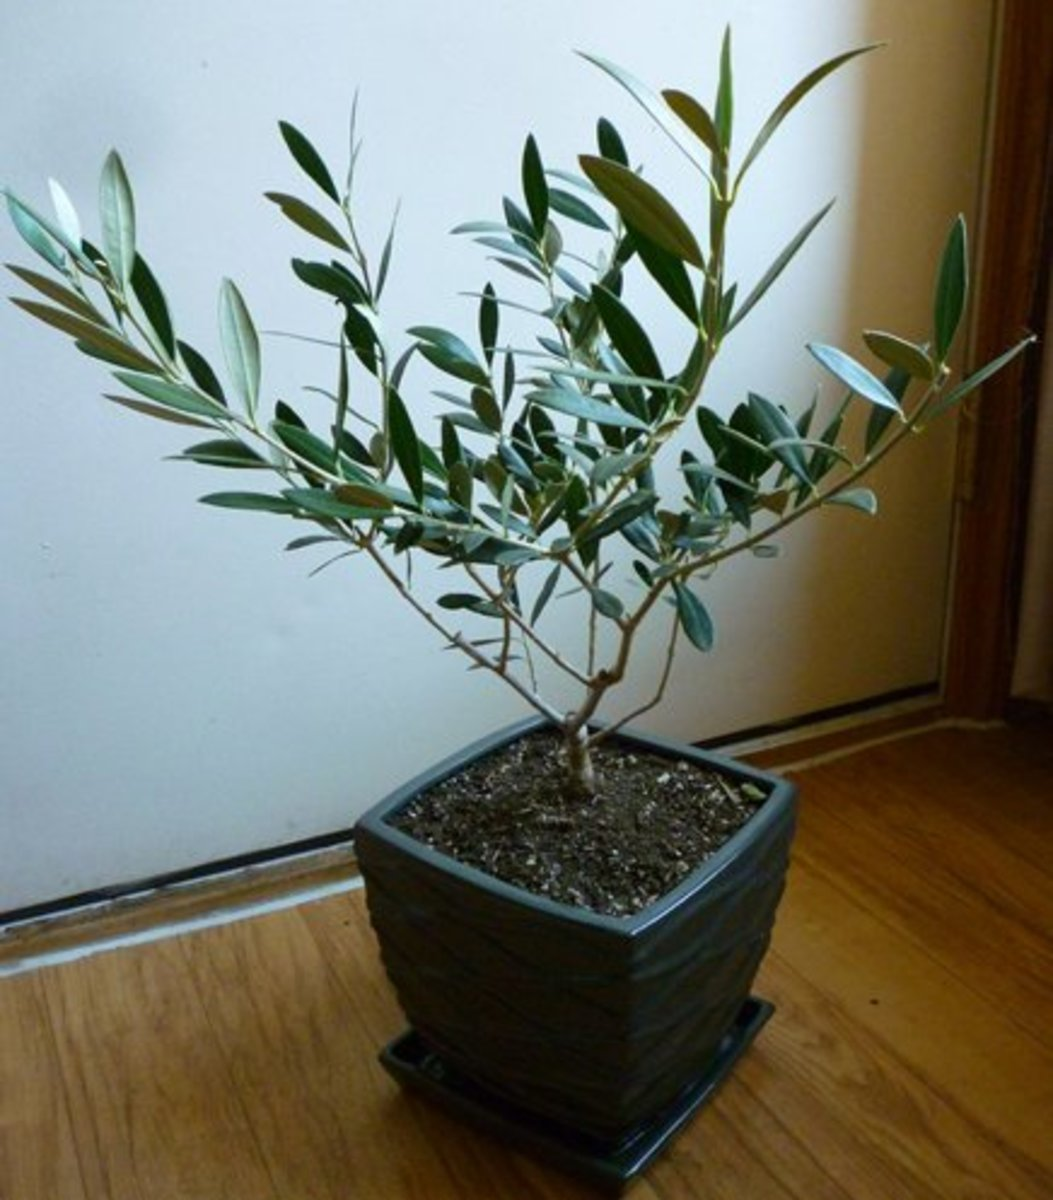 This is the same olive tree as above, only before replanting and pruning.